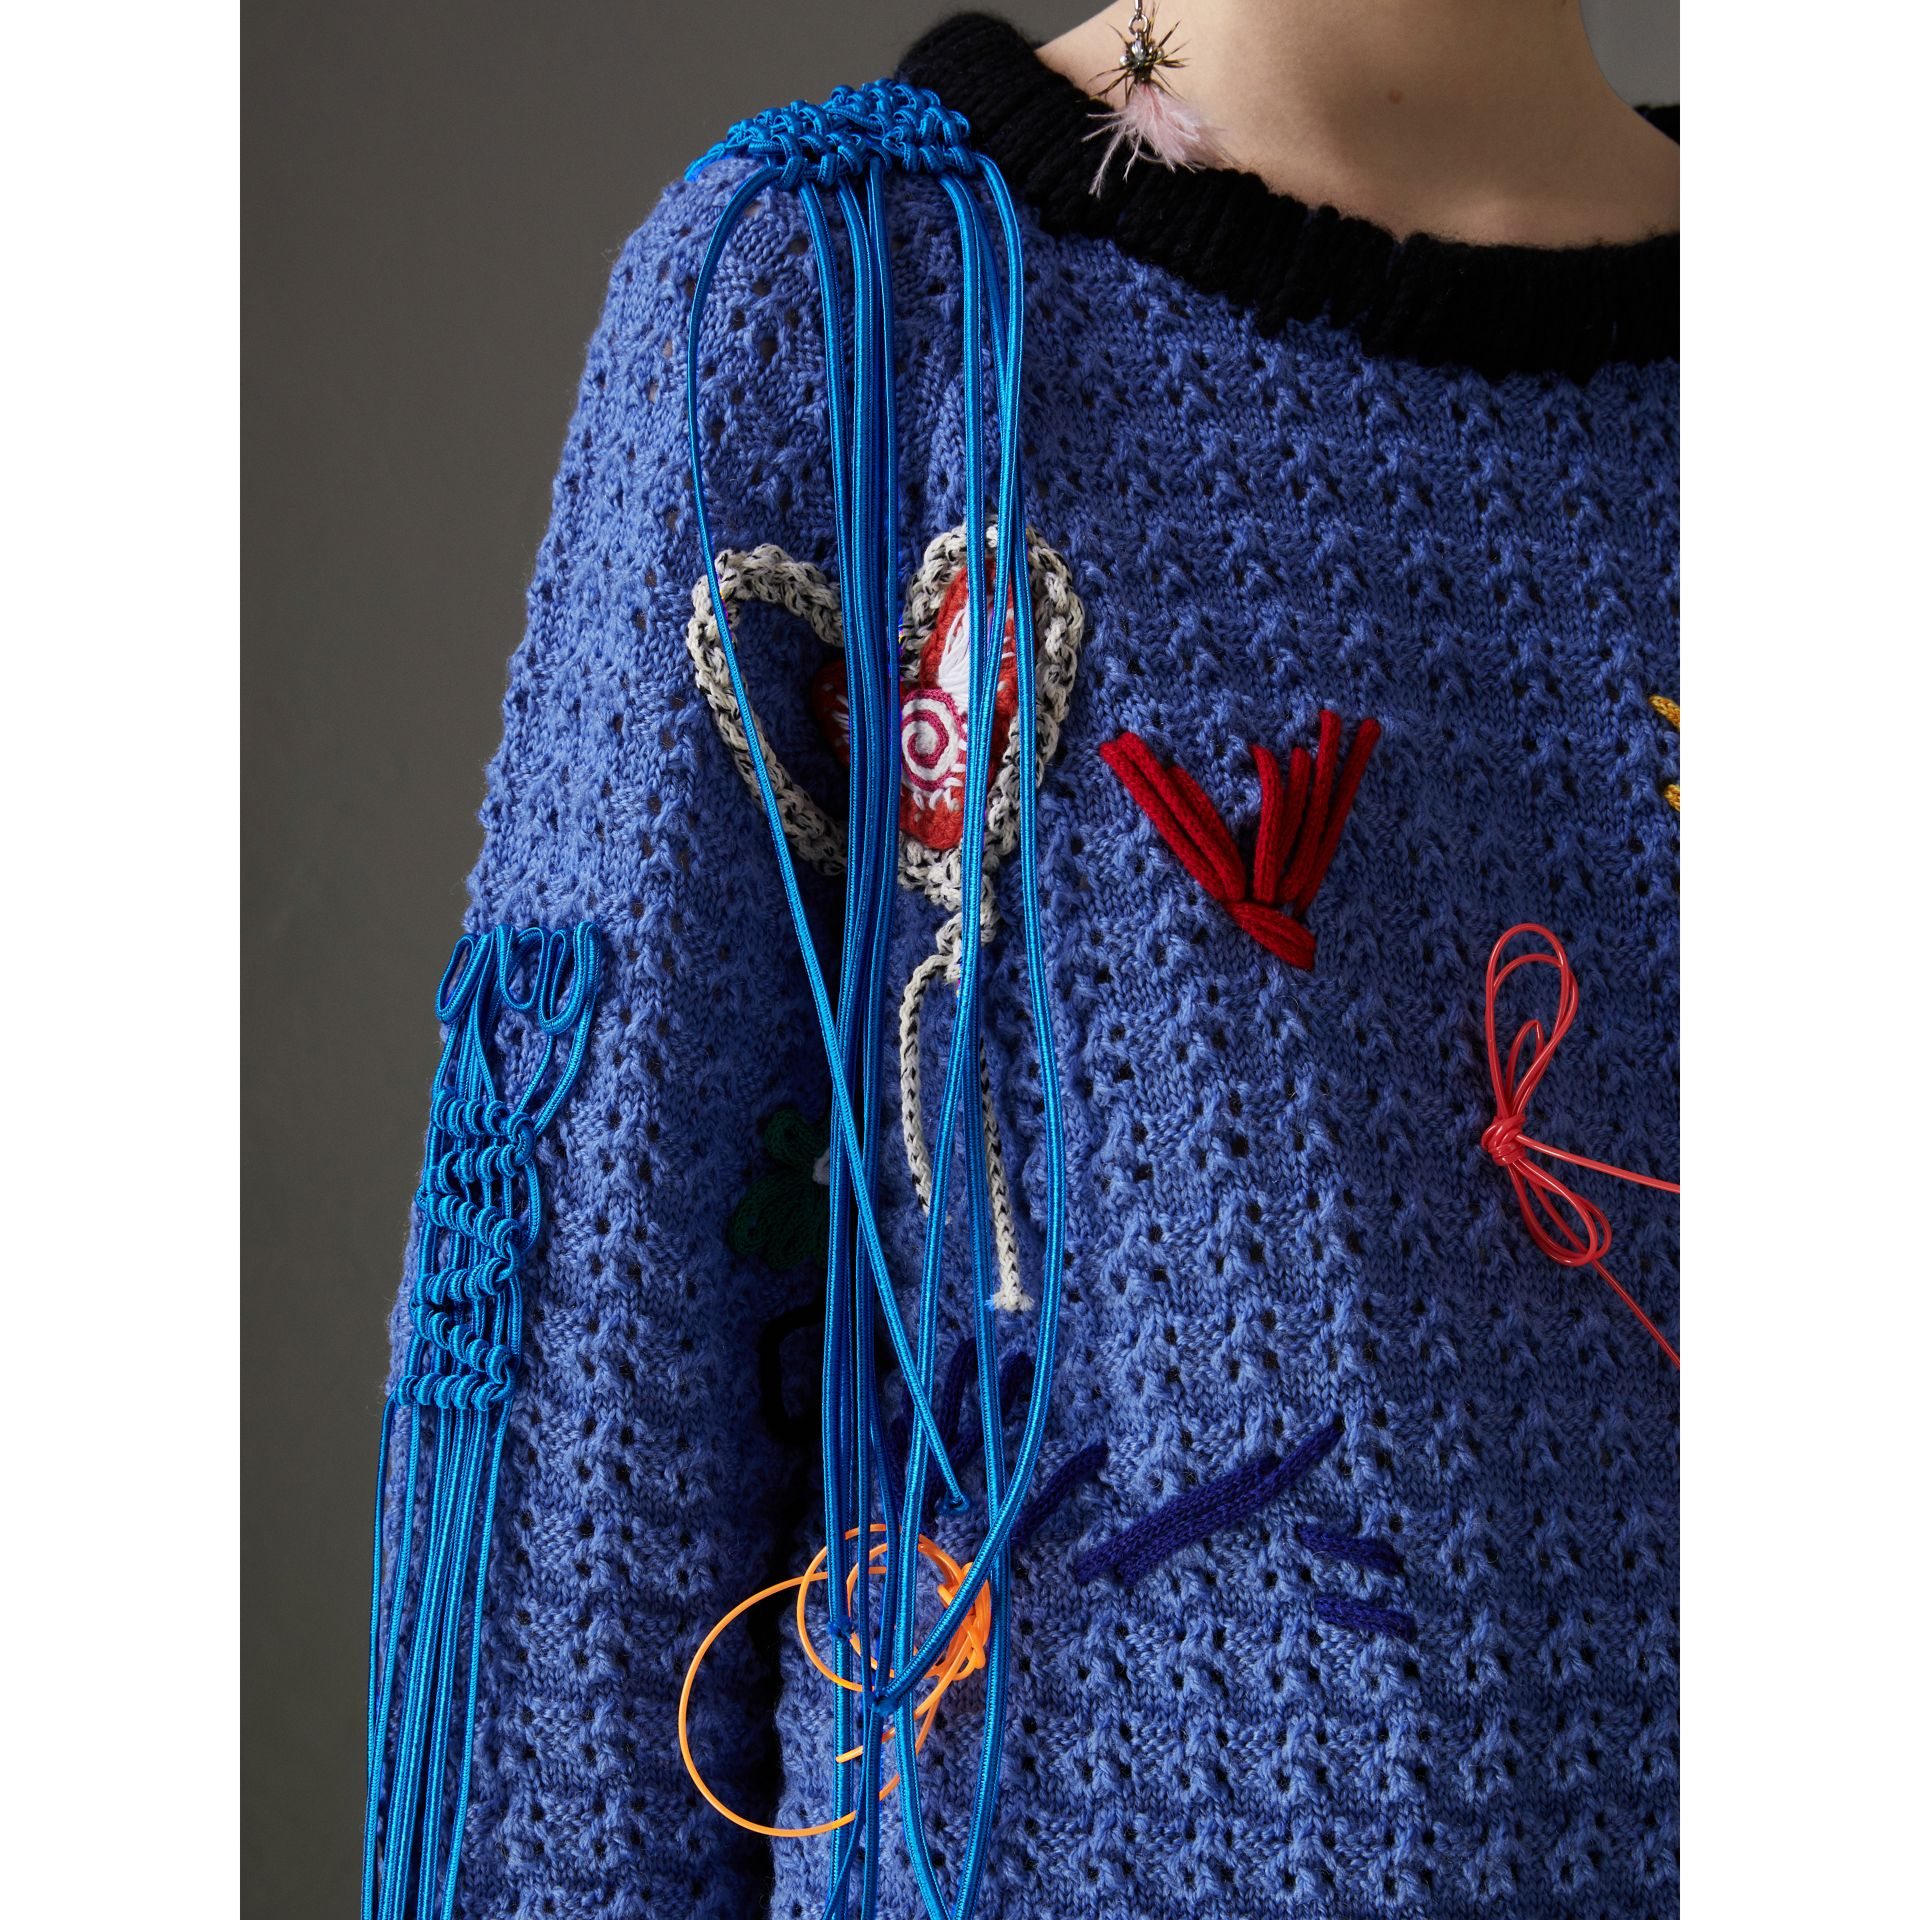 Embellished Wool Lace Sweater in Cornflower Blue - Women | Burberry - gallery image 1